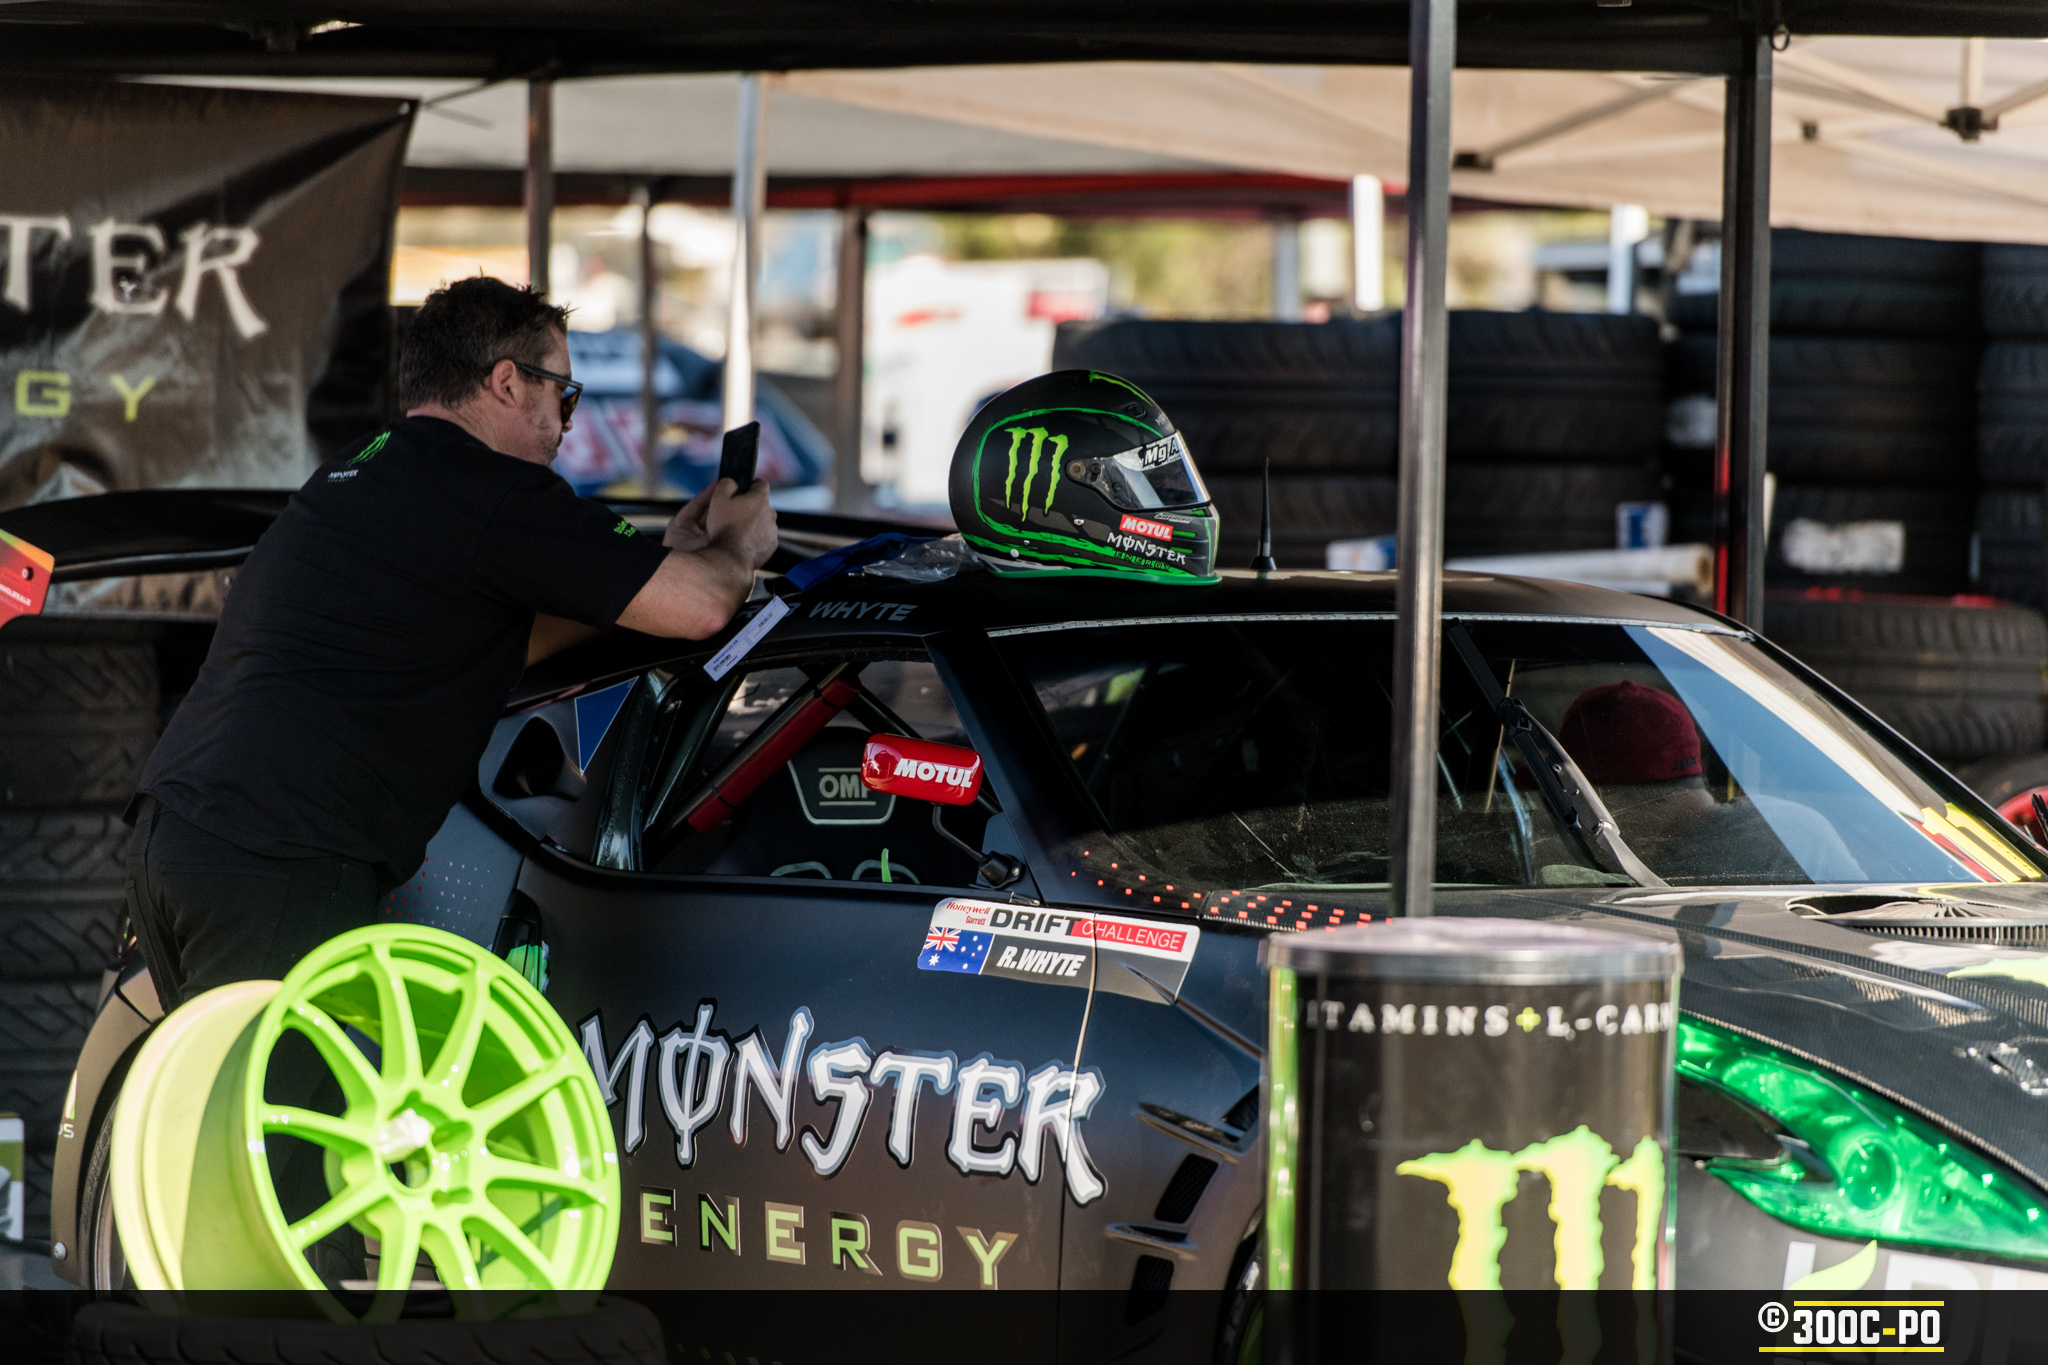 2017-10-12 - WTAC 2017 Test Day 067